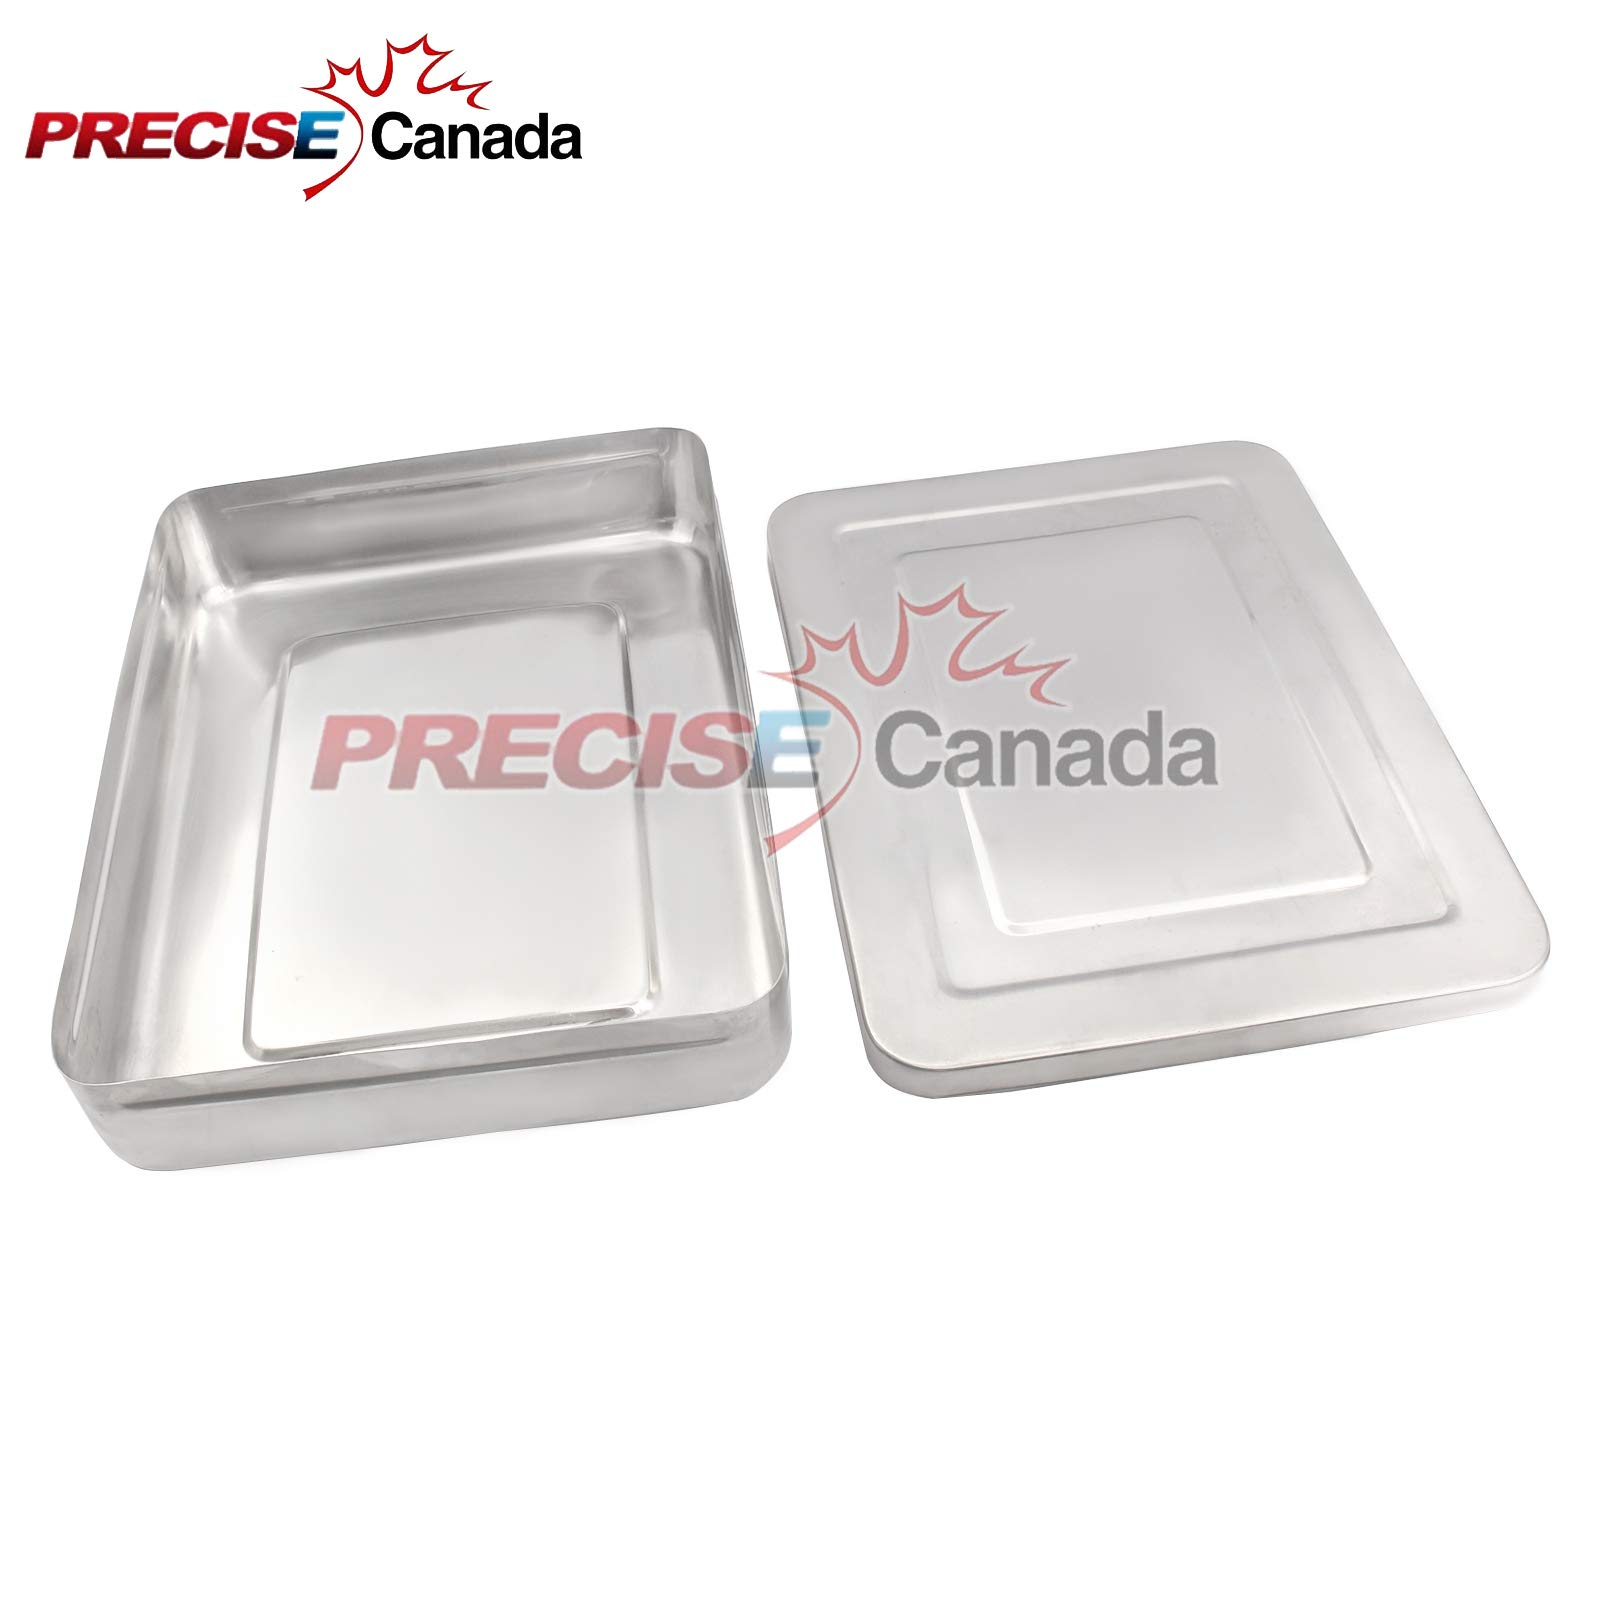 Precise Canada: Instruments Box 41x30x7 cm Stainless Steel Surgi Instruments